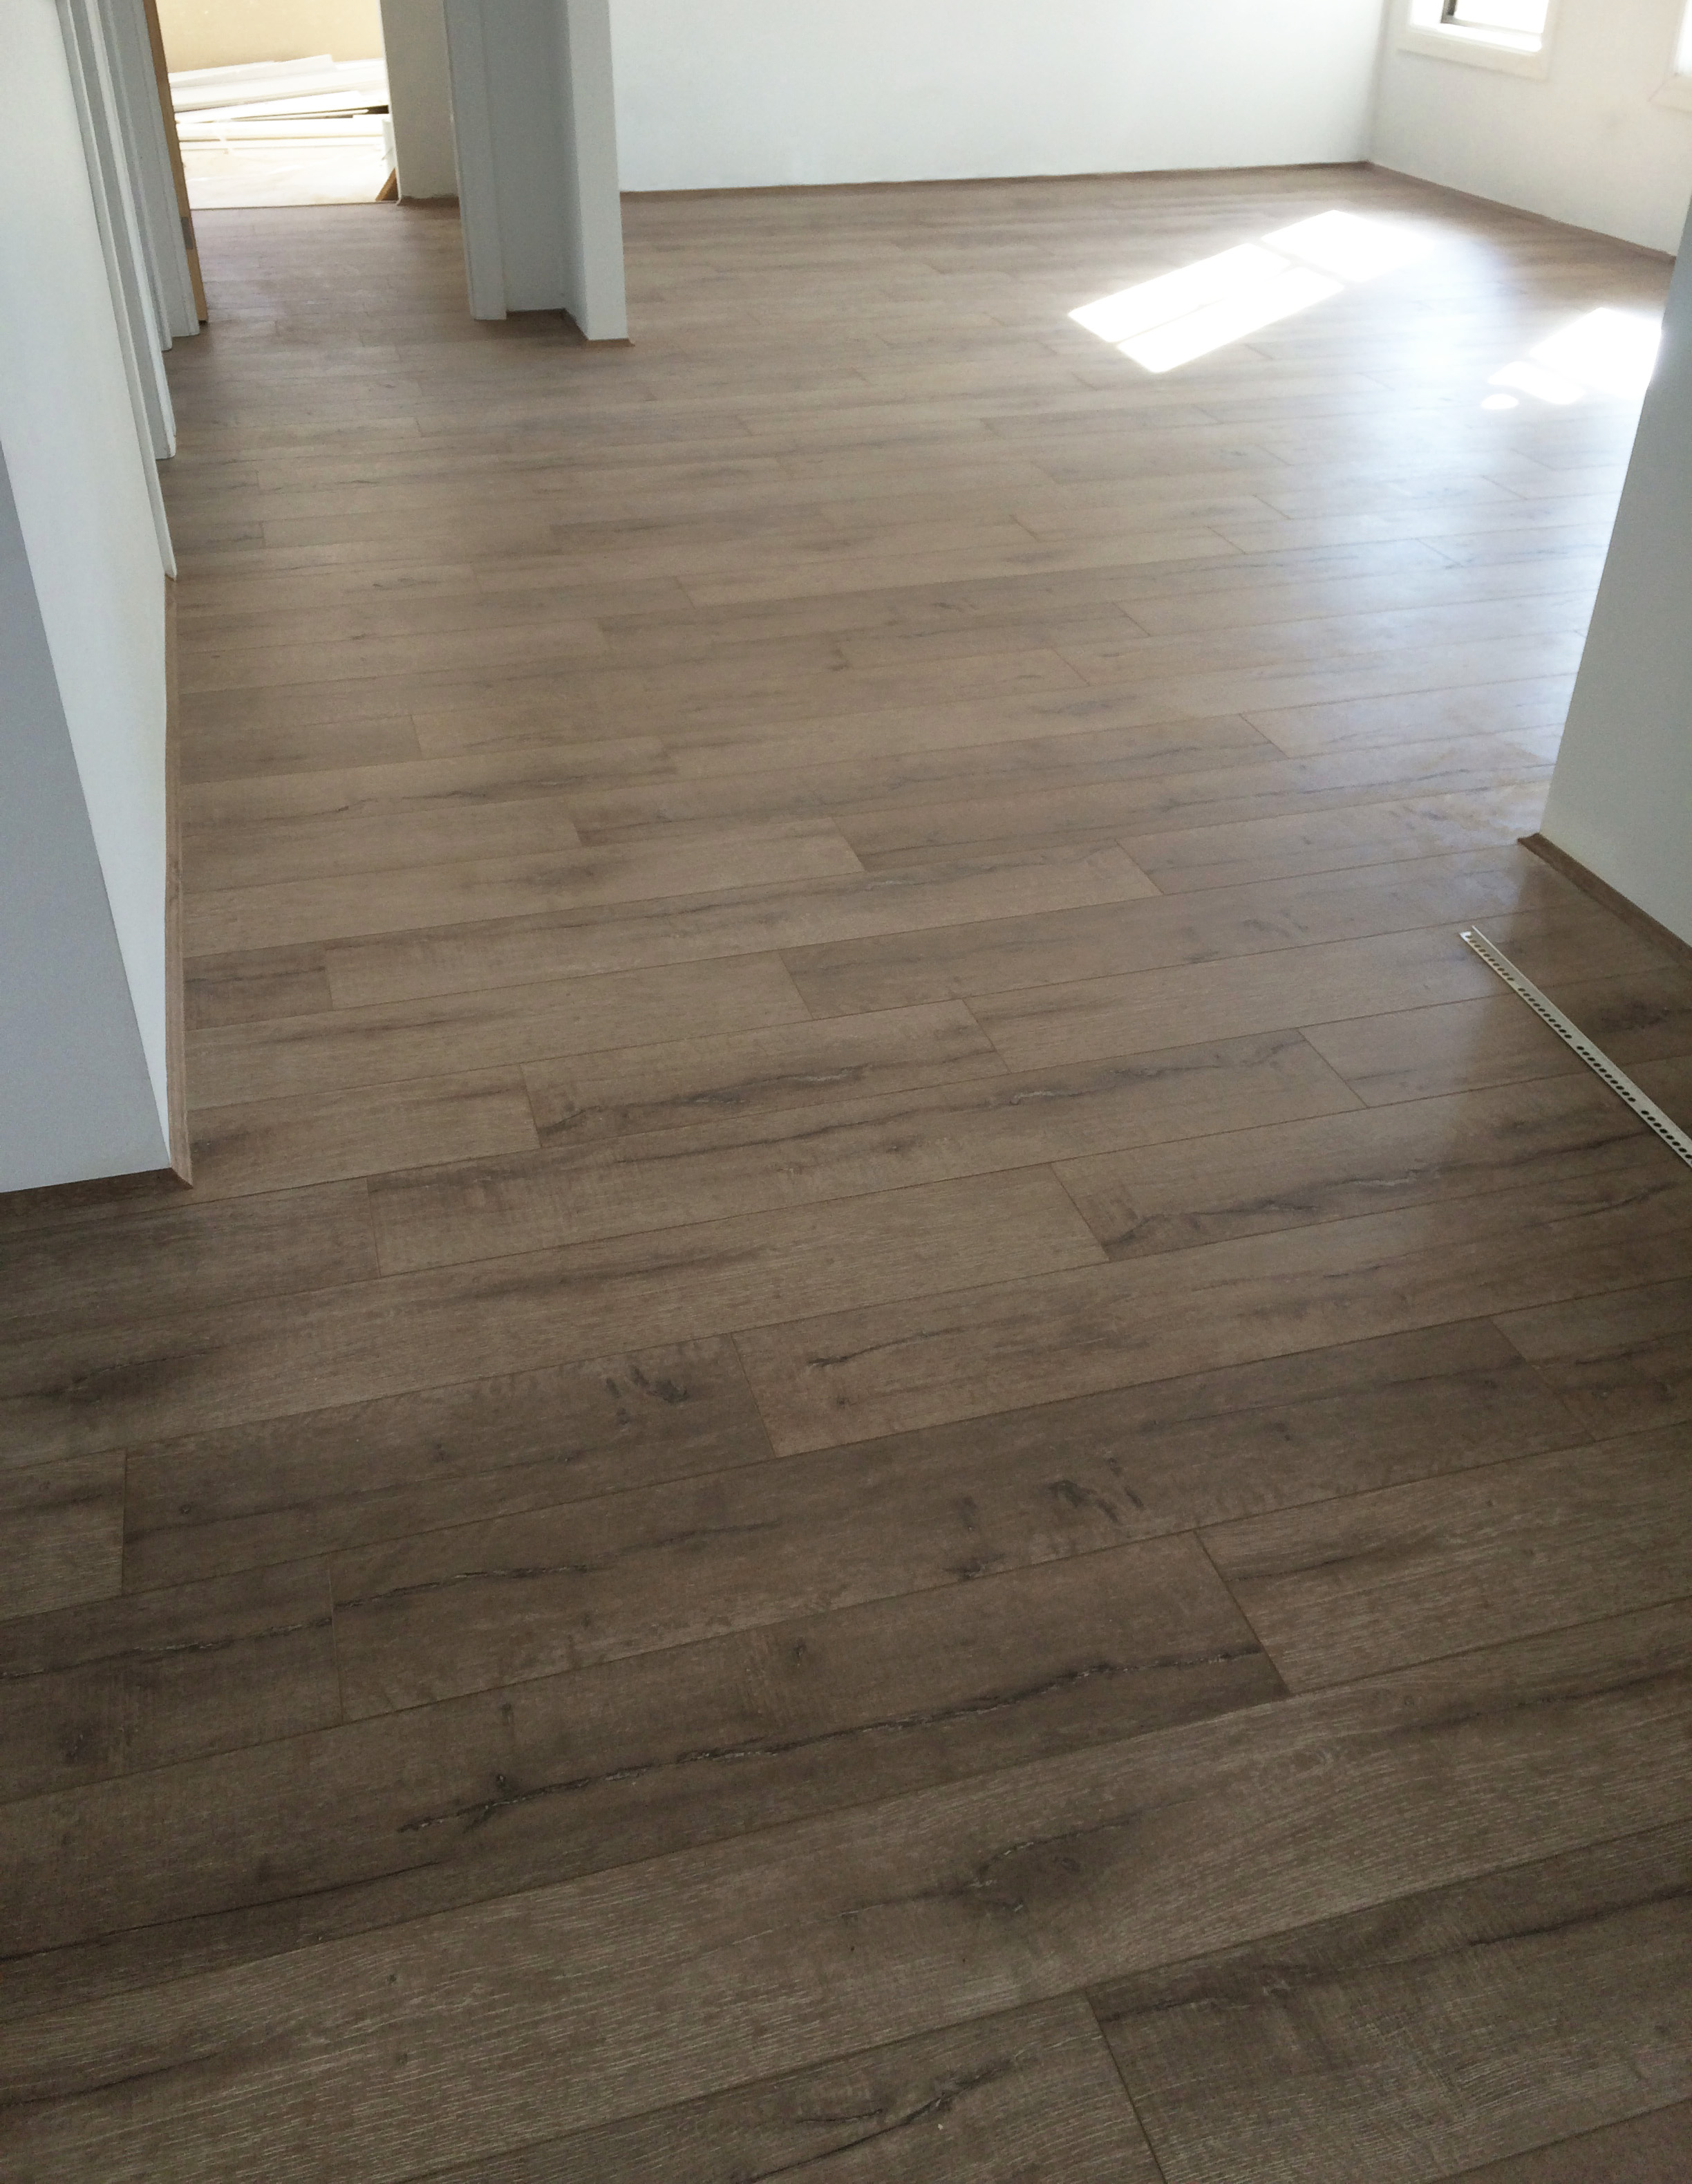 jhwwservicesimage houston floor experience years james woodworks flooring services